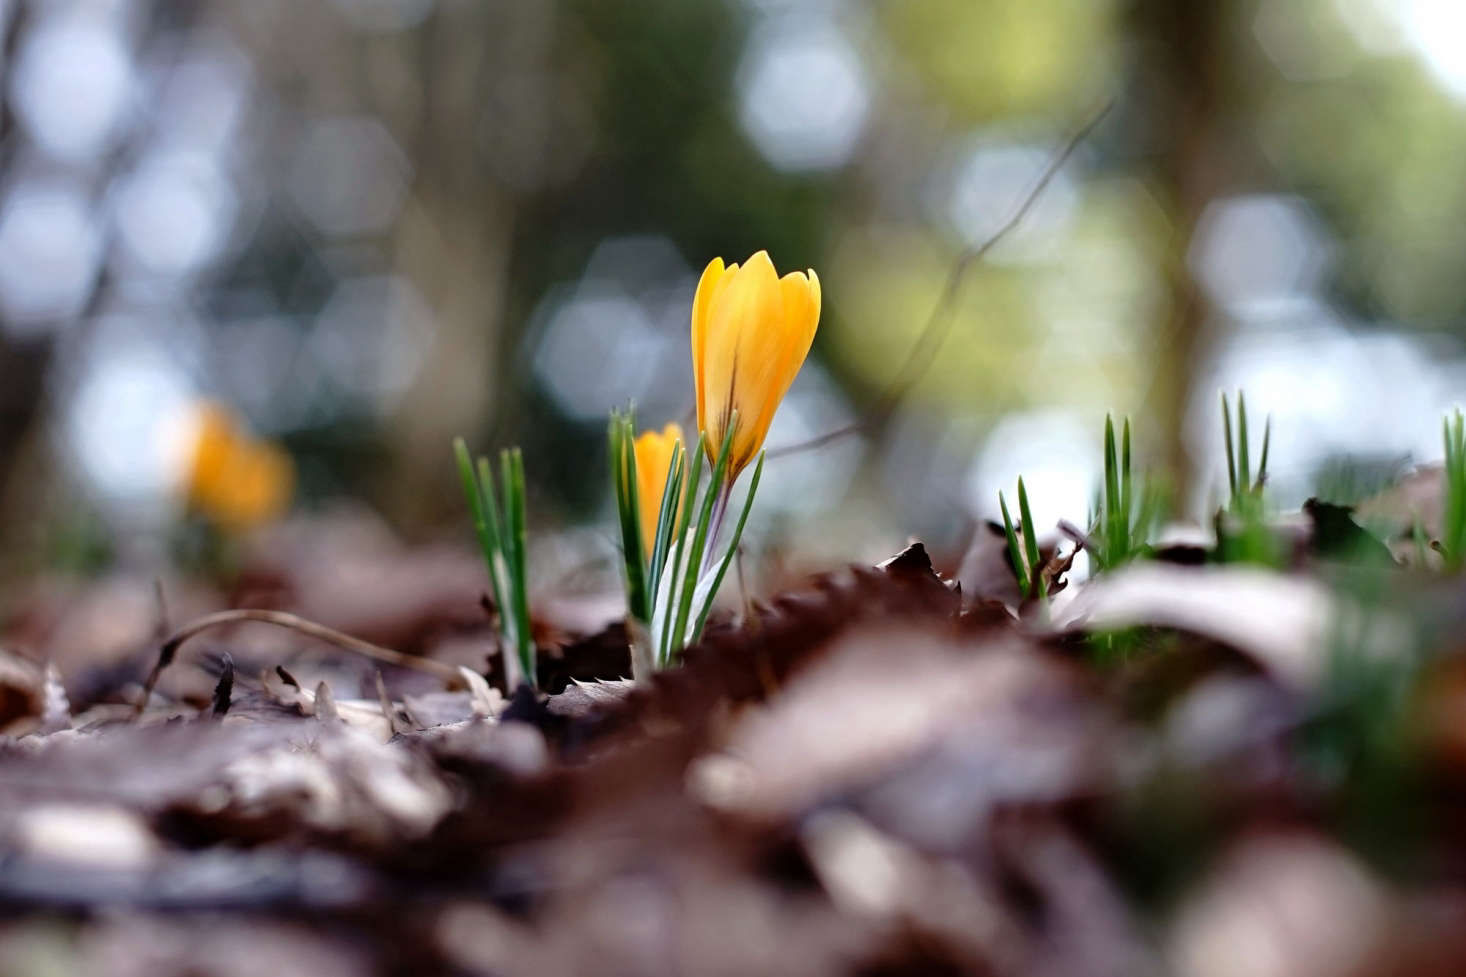 For now we thank those tiny cup-shaped flowers for making late February and early March bearable. Photograph by Takashi .M via Flickr.